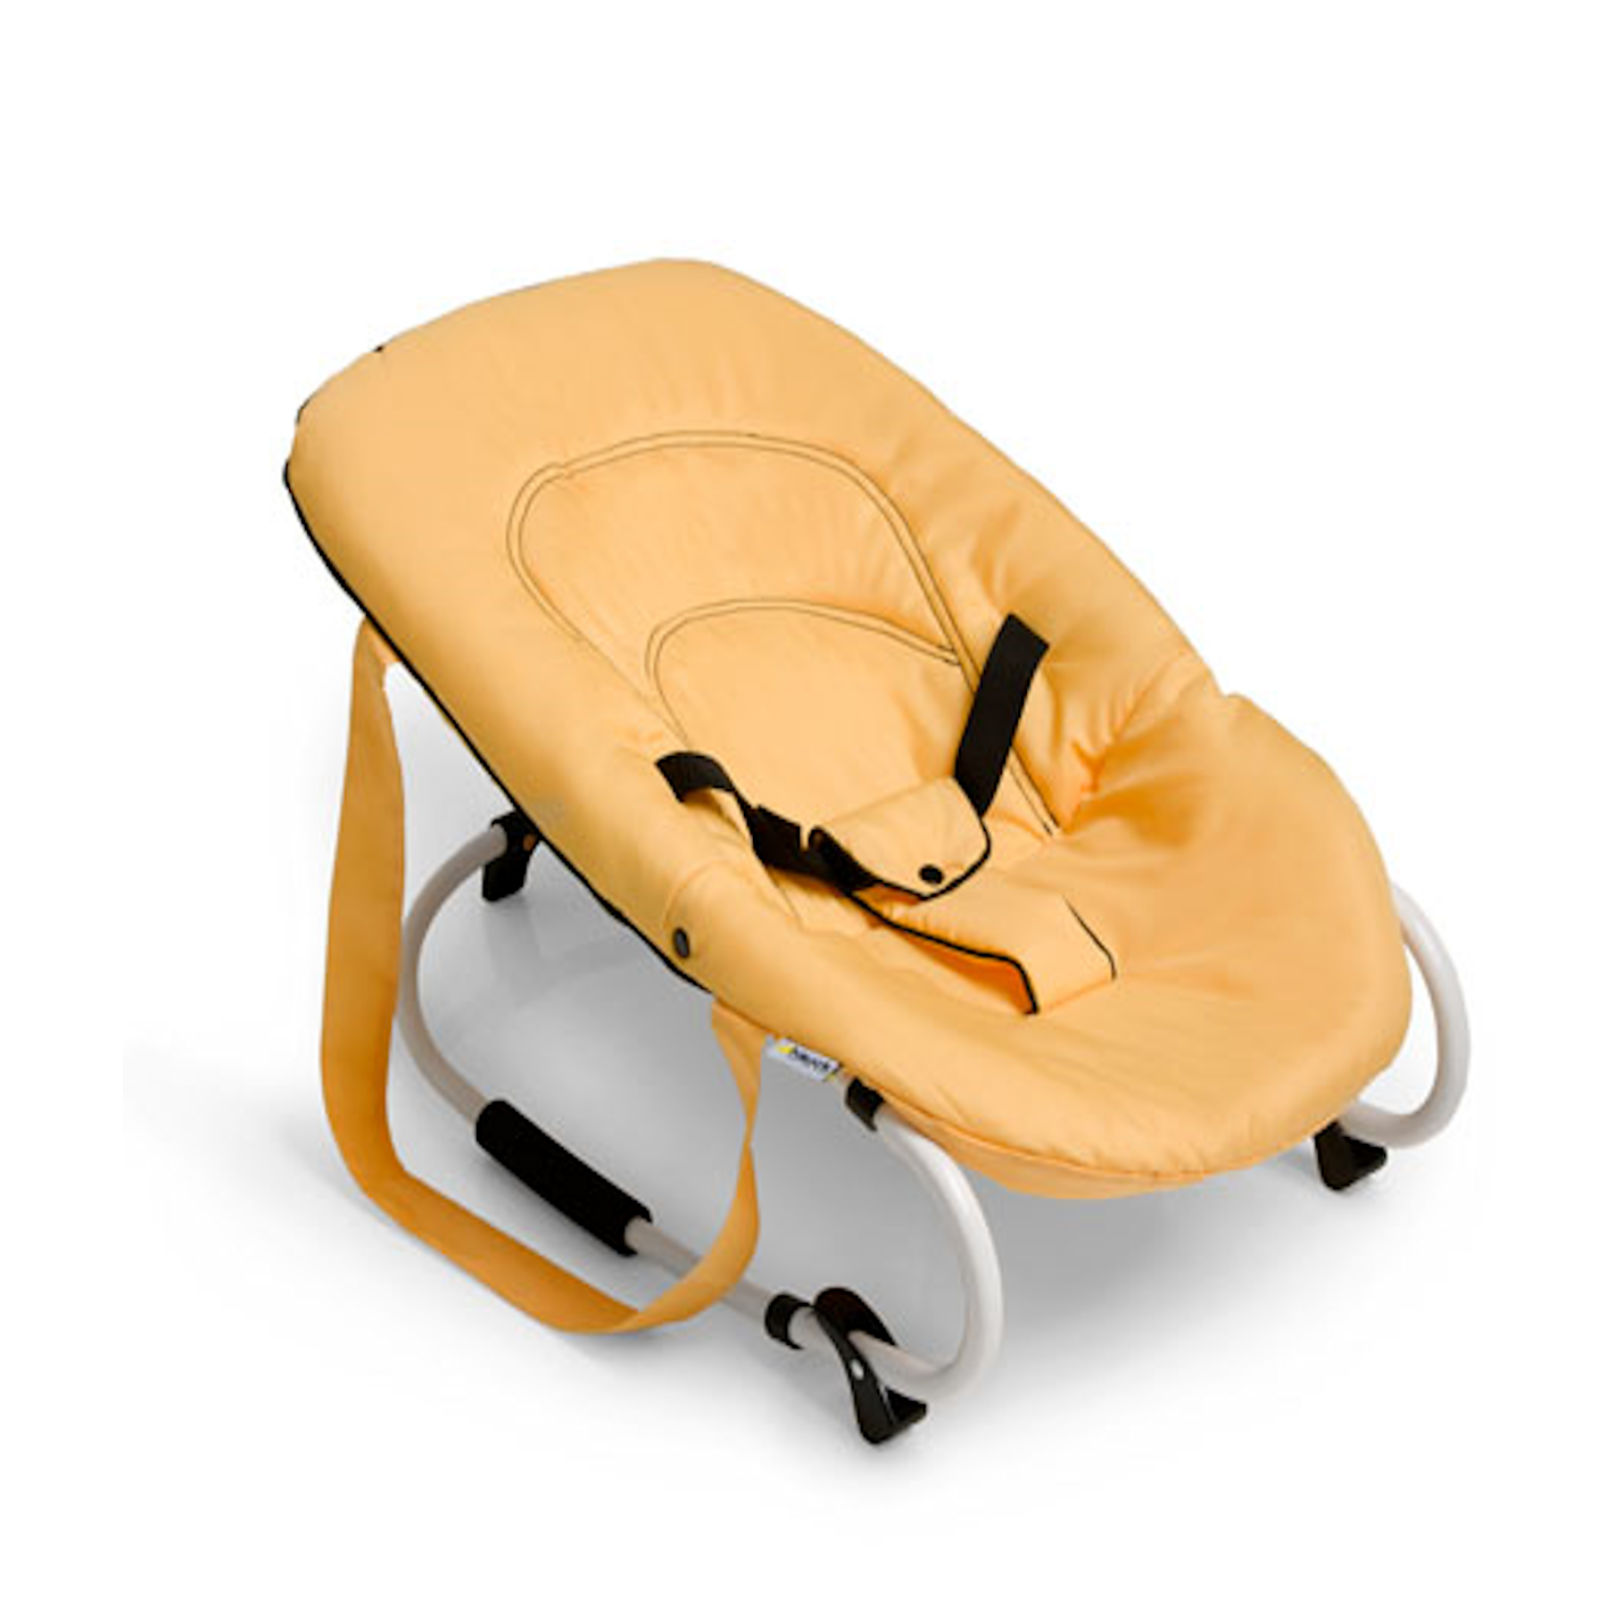 Banana Rocker Chair New Hauck Banana Rocky Deluxe Baby Bouncer Rocker Chair